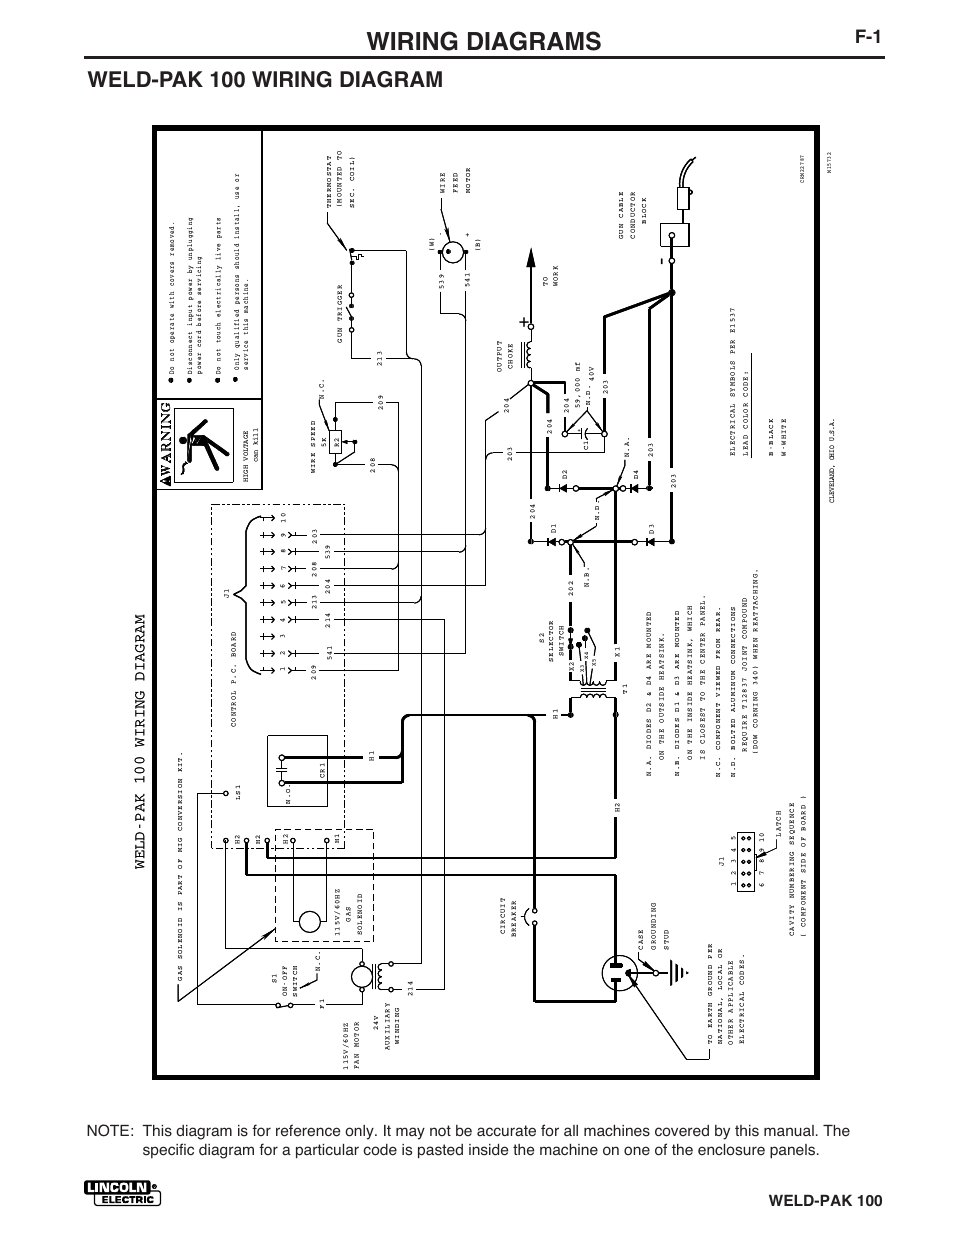 Welding Wiring Diagram Library Subaru Forester Gt Diagrams Weld Pak 100 Lincoln